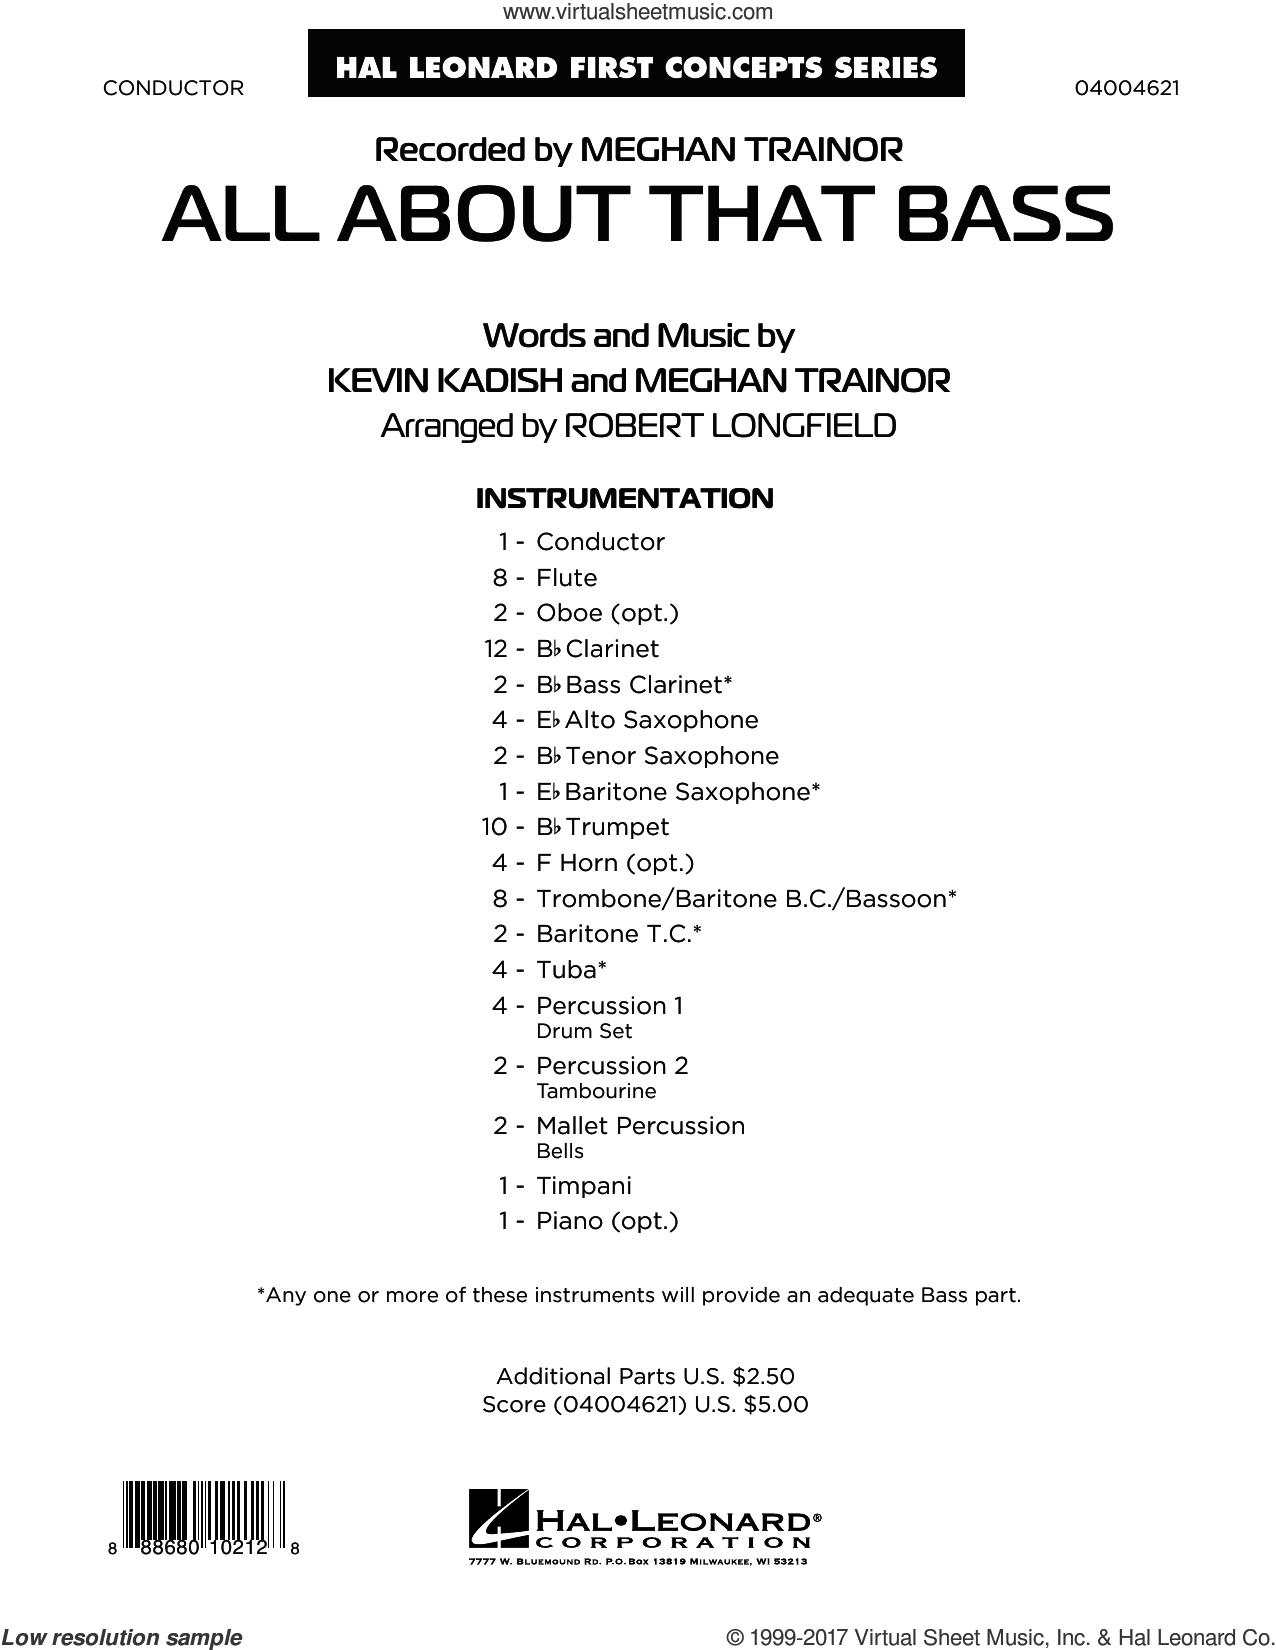 All About That Bass (COMPLETE) sheet music for concert band by Robert Longfield, Kevin Kadish and Meghan Trainor, intermediate skill level